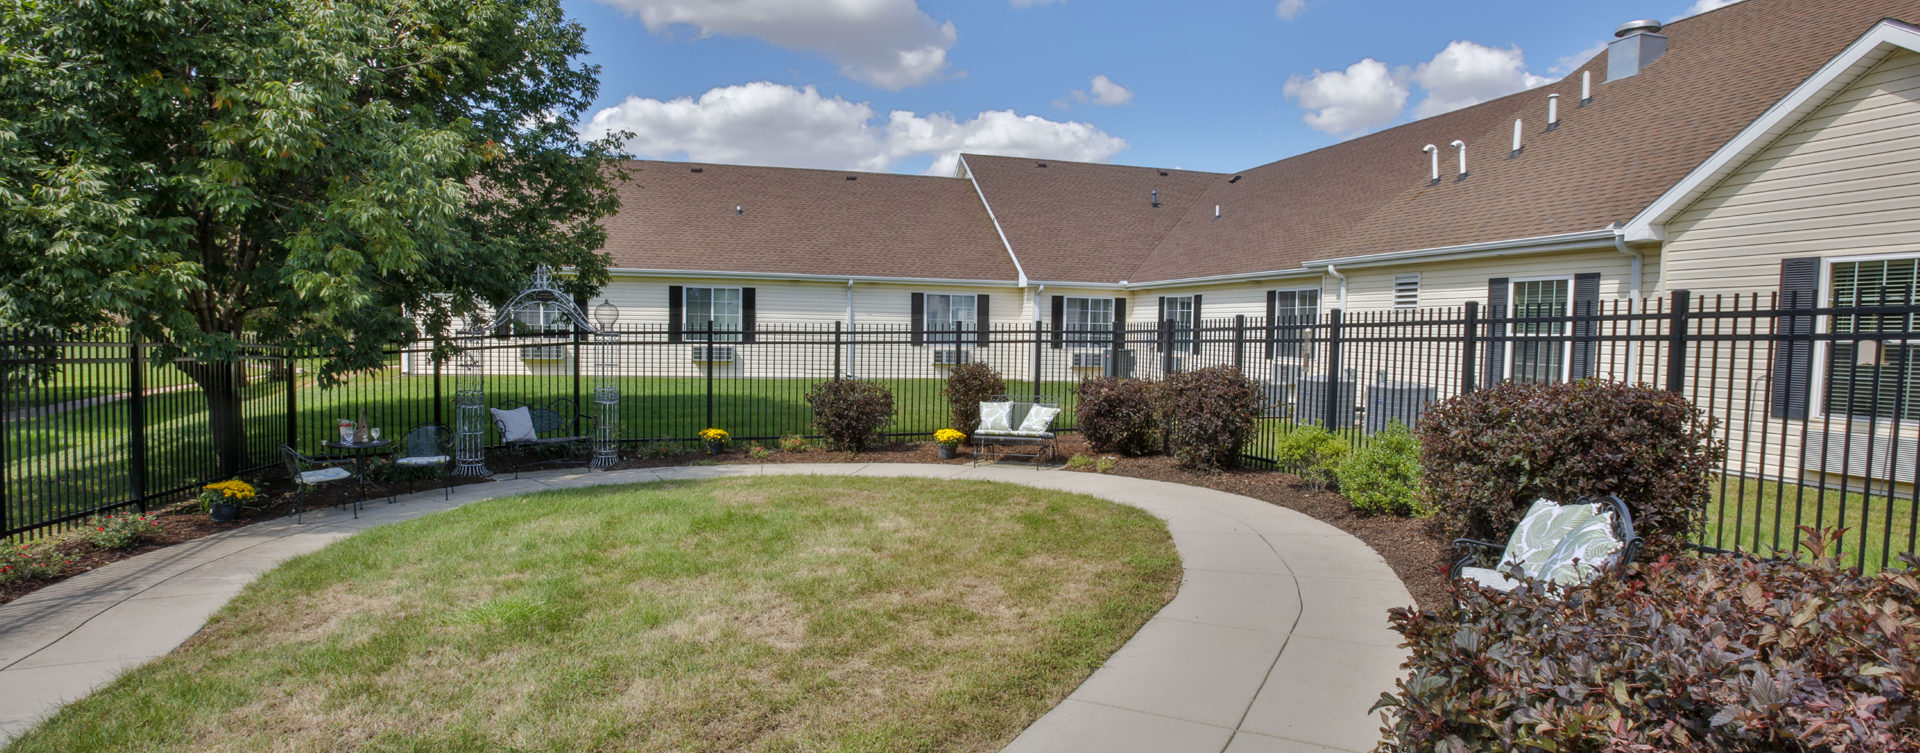 Residents with dementia can enjoy a traveling path, relaxed seating and raised garden beds in the courtyard at Bickford of Champaign